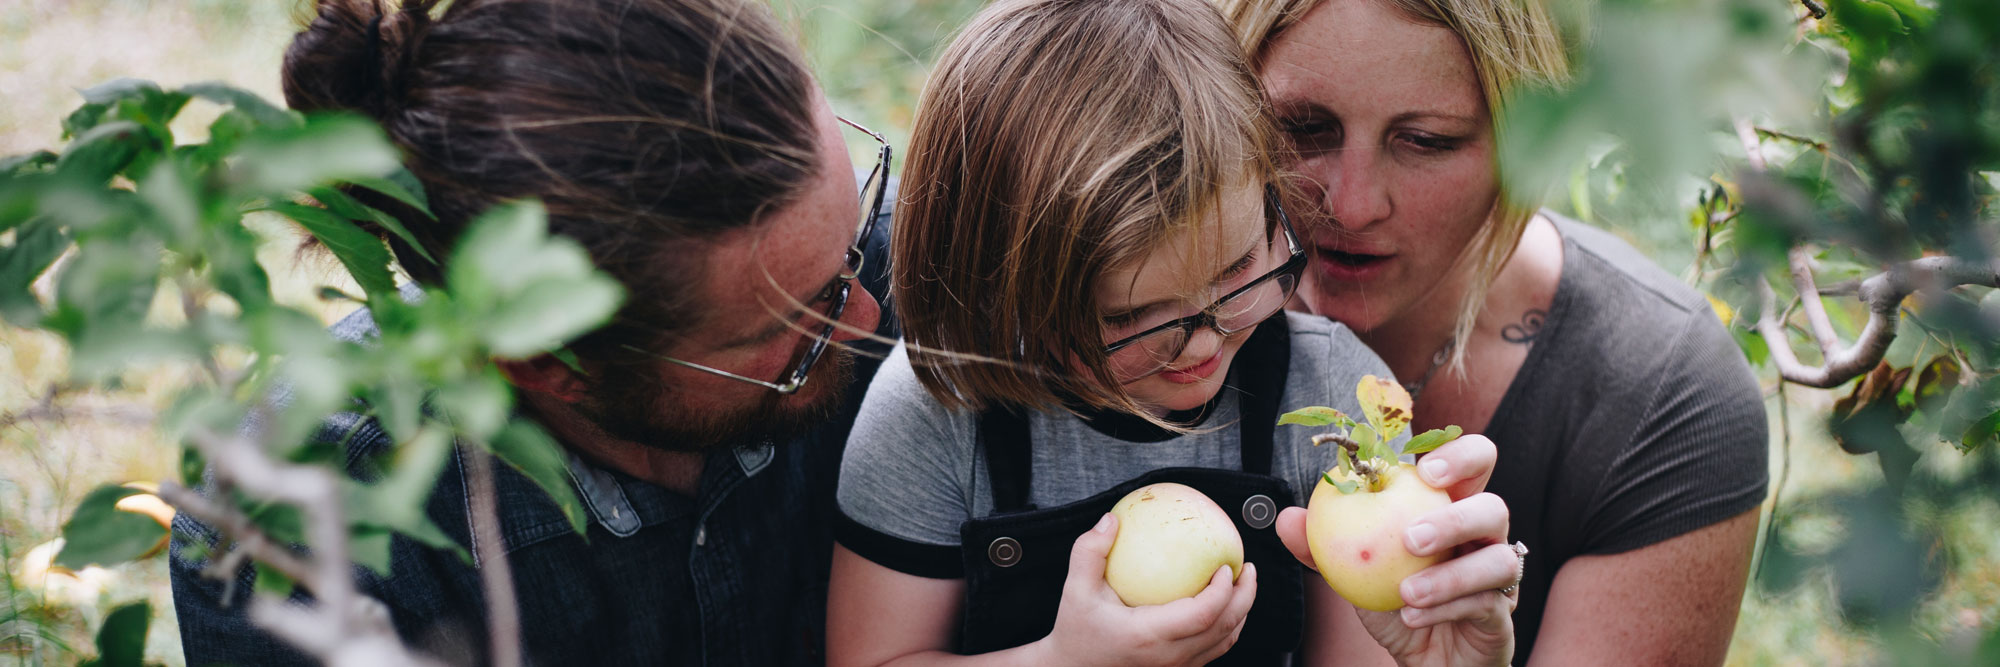 Father, mother, daughter apple picking. Daughter and mother each holding golden apples.